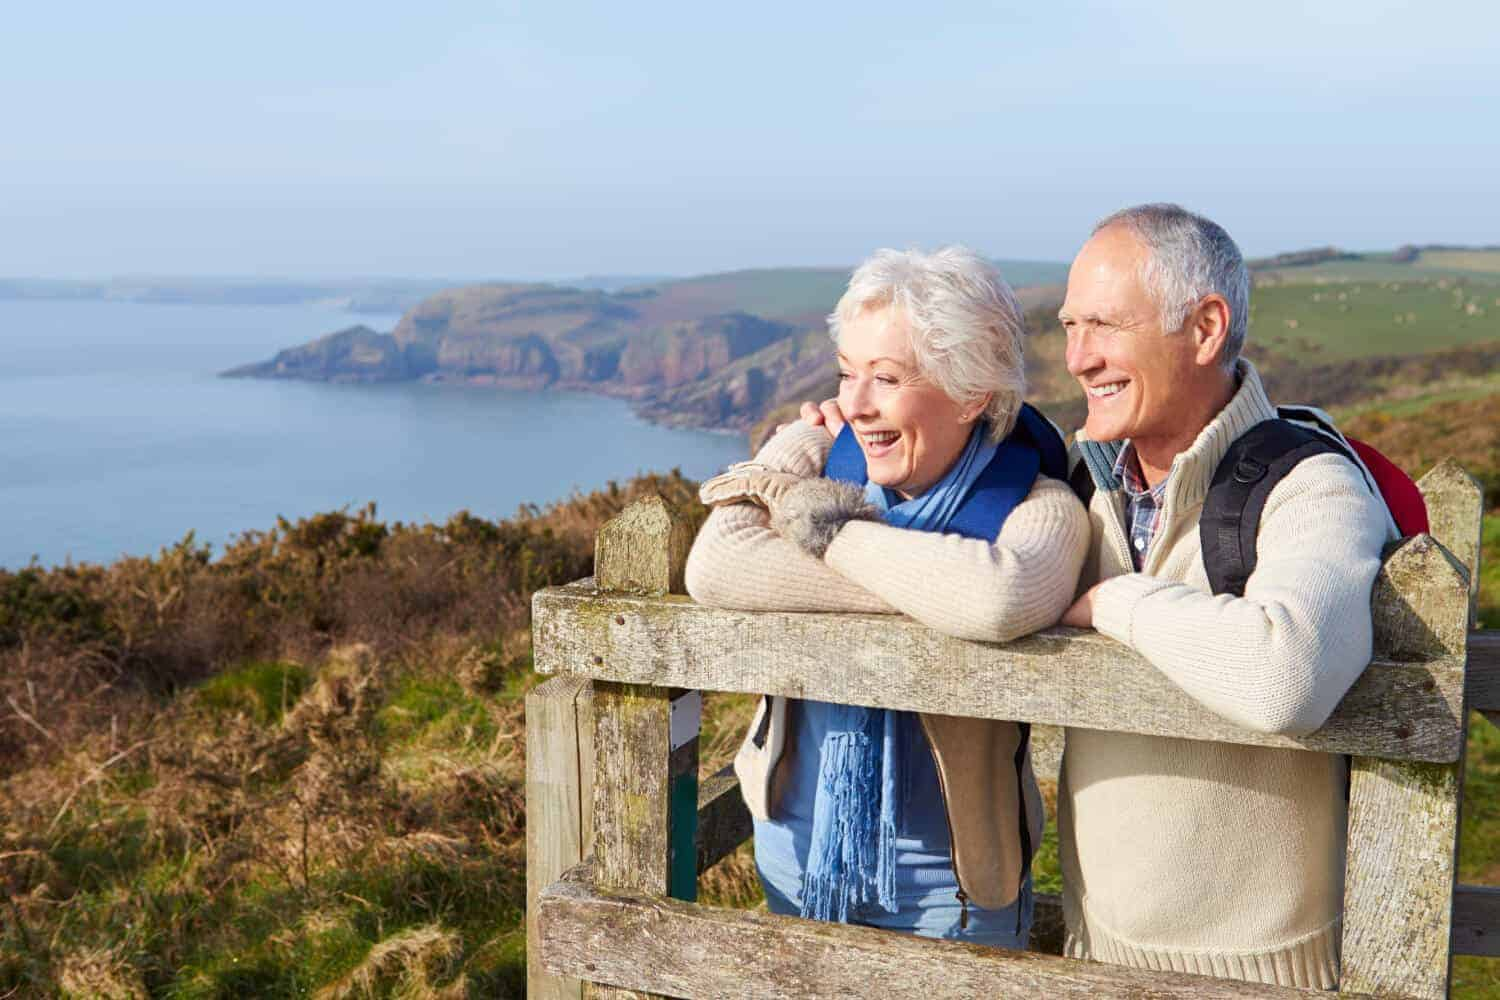 senior couple looking at the landscape at an overlook